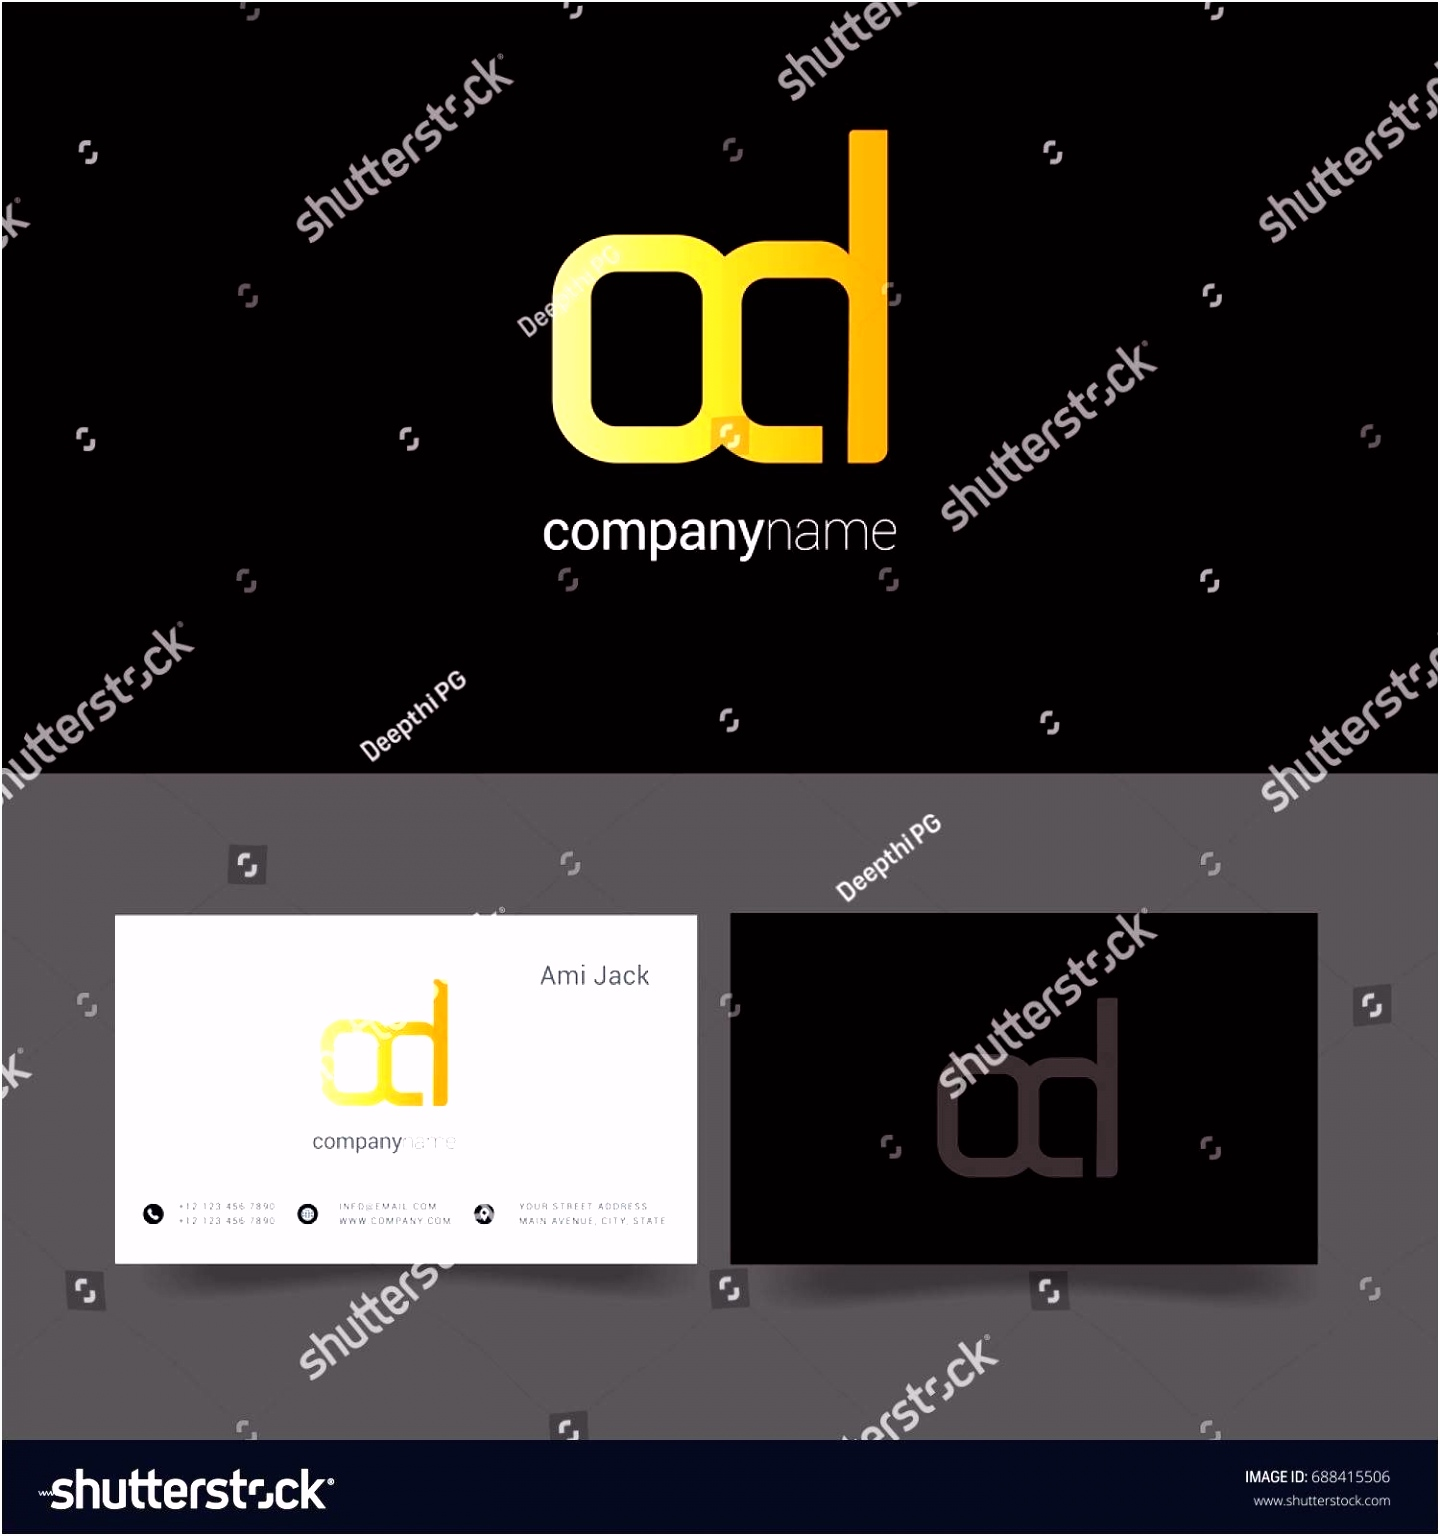 Awesome Gallery Free Business Card Template In 2019 Business Cards